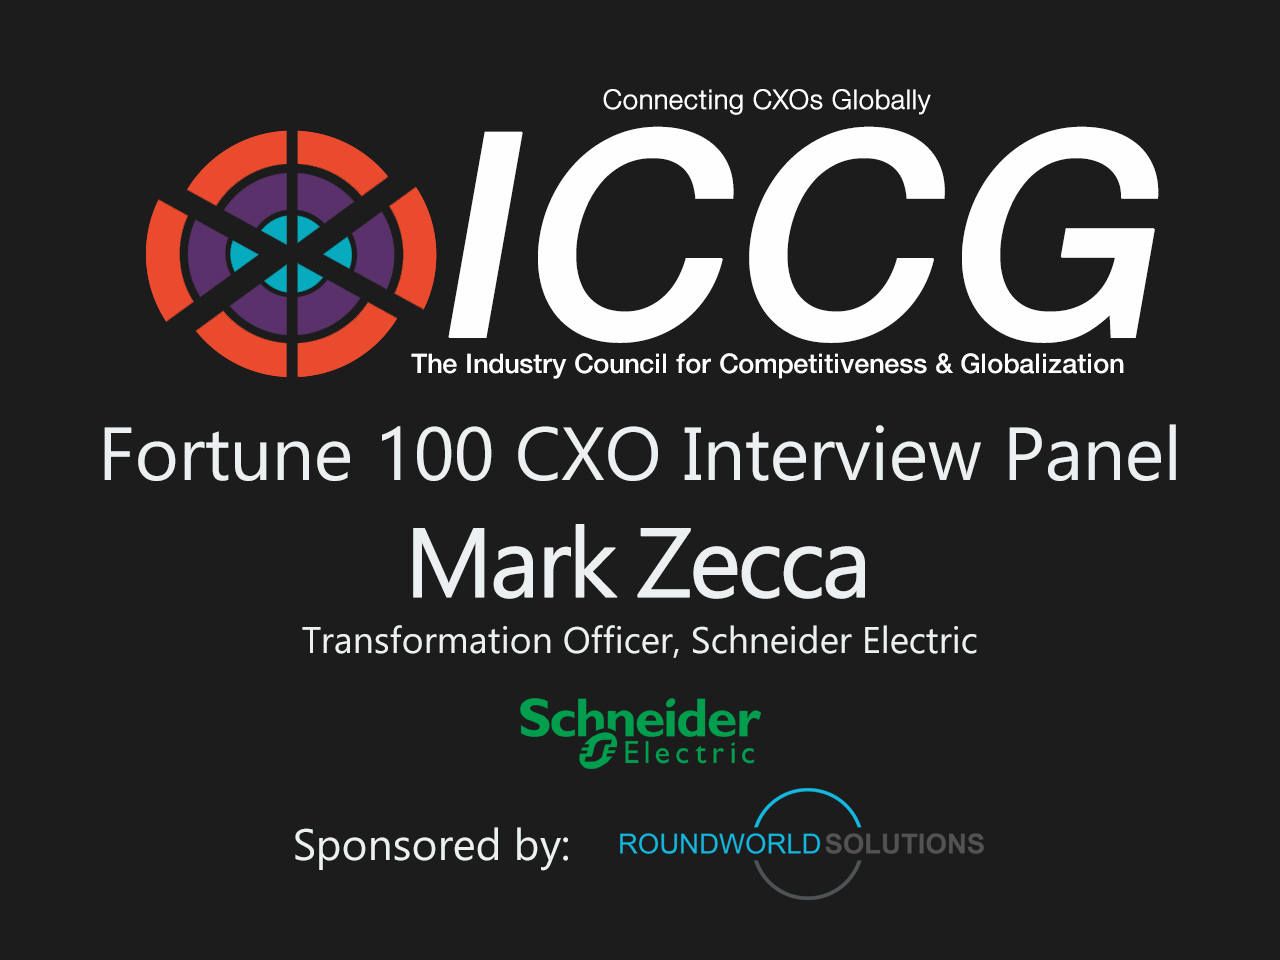 ICCG Fortune 1000 CXO Interview Panel: Mark Zecca Transformation Officer, Schneider Electric